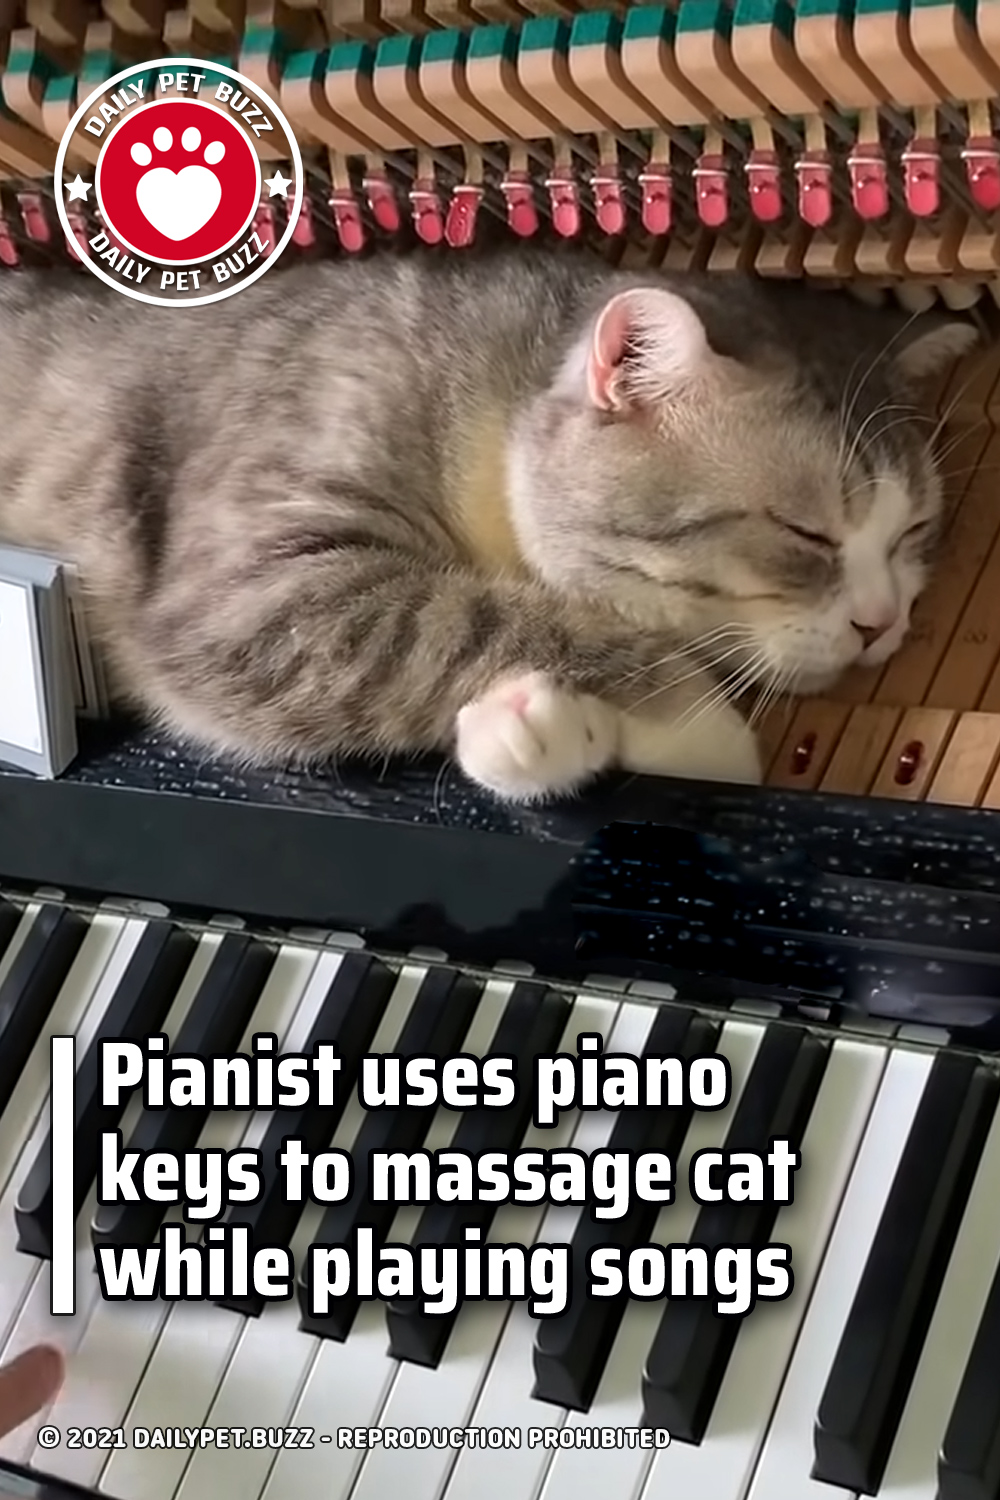 Pianist uses piano keys to massage cat while playing songs